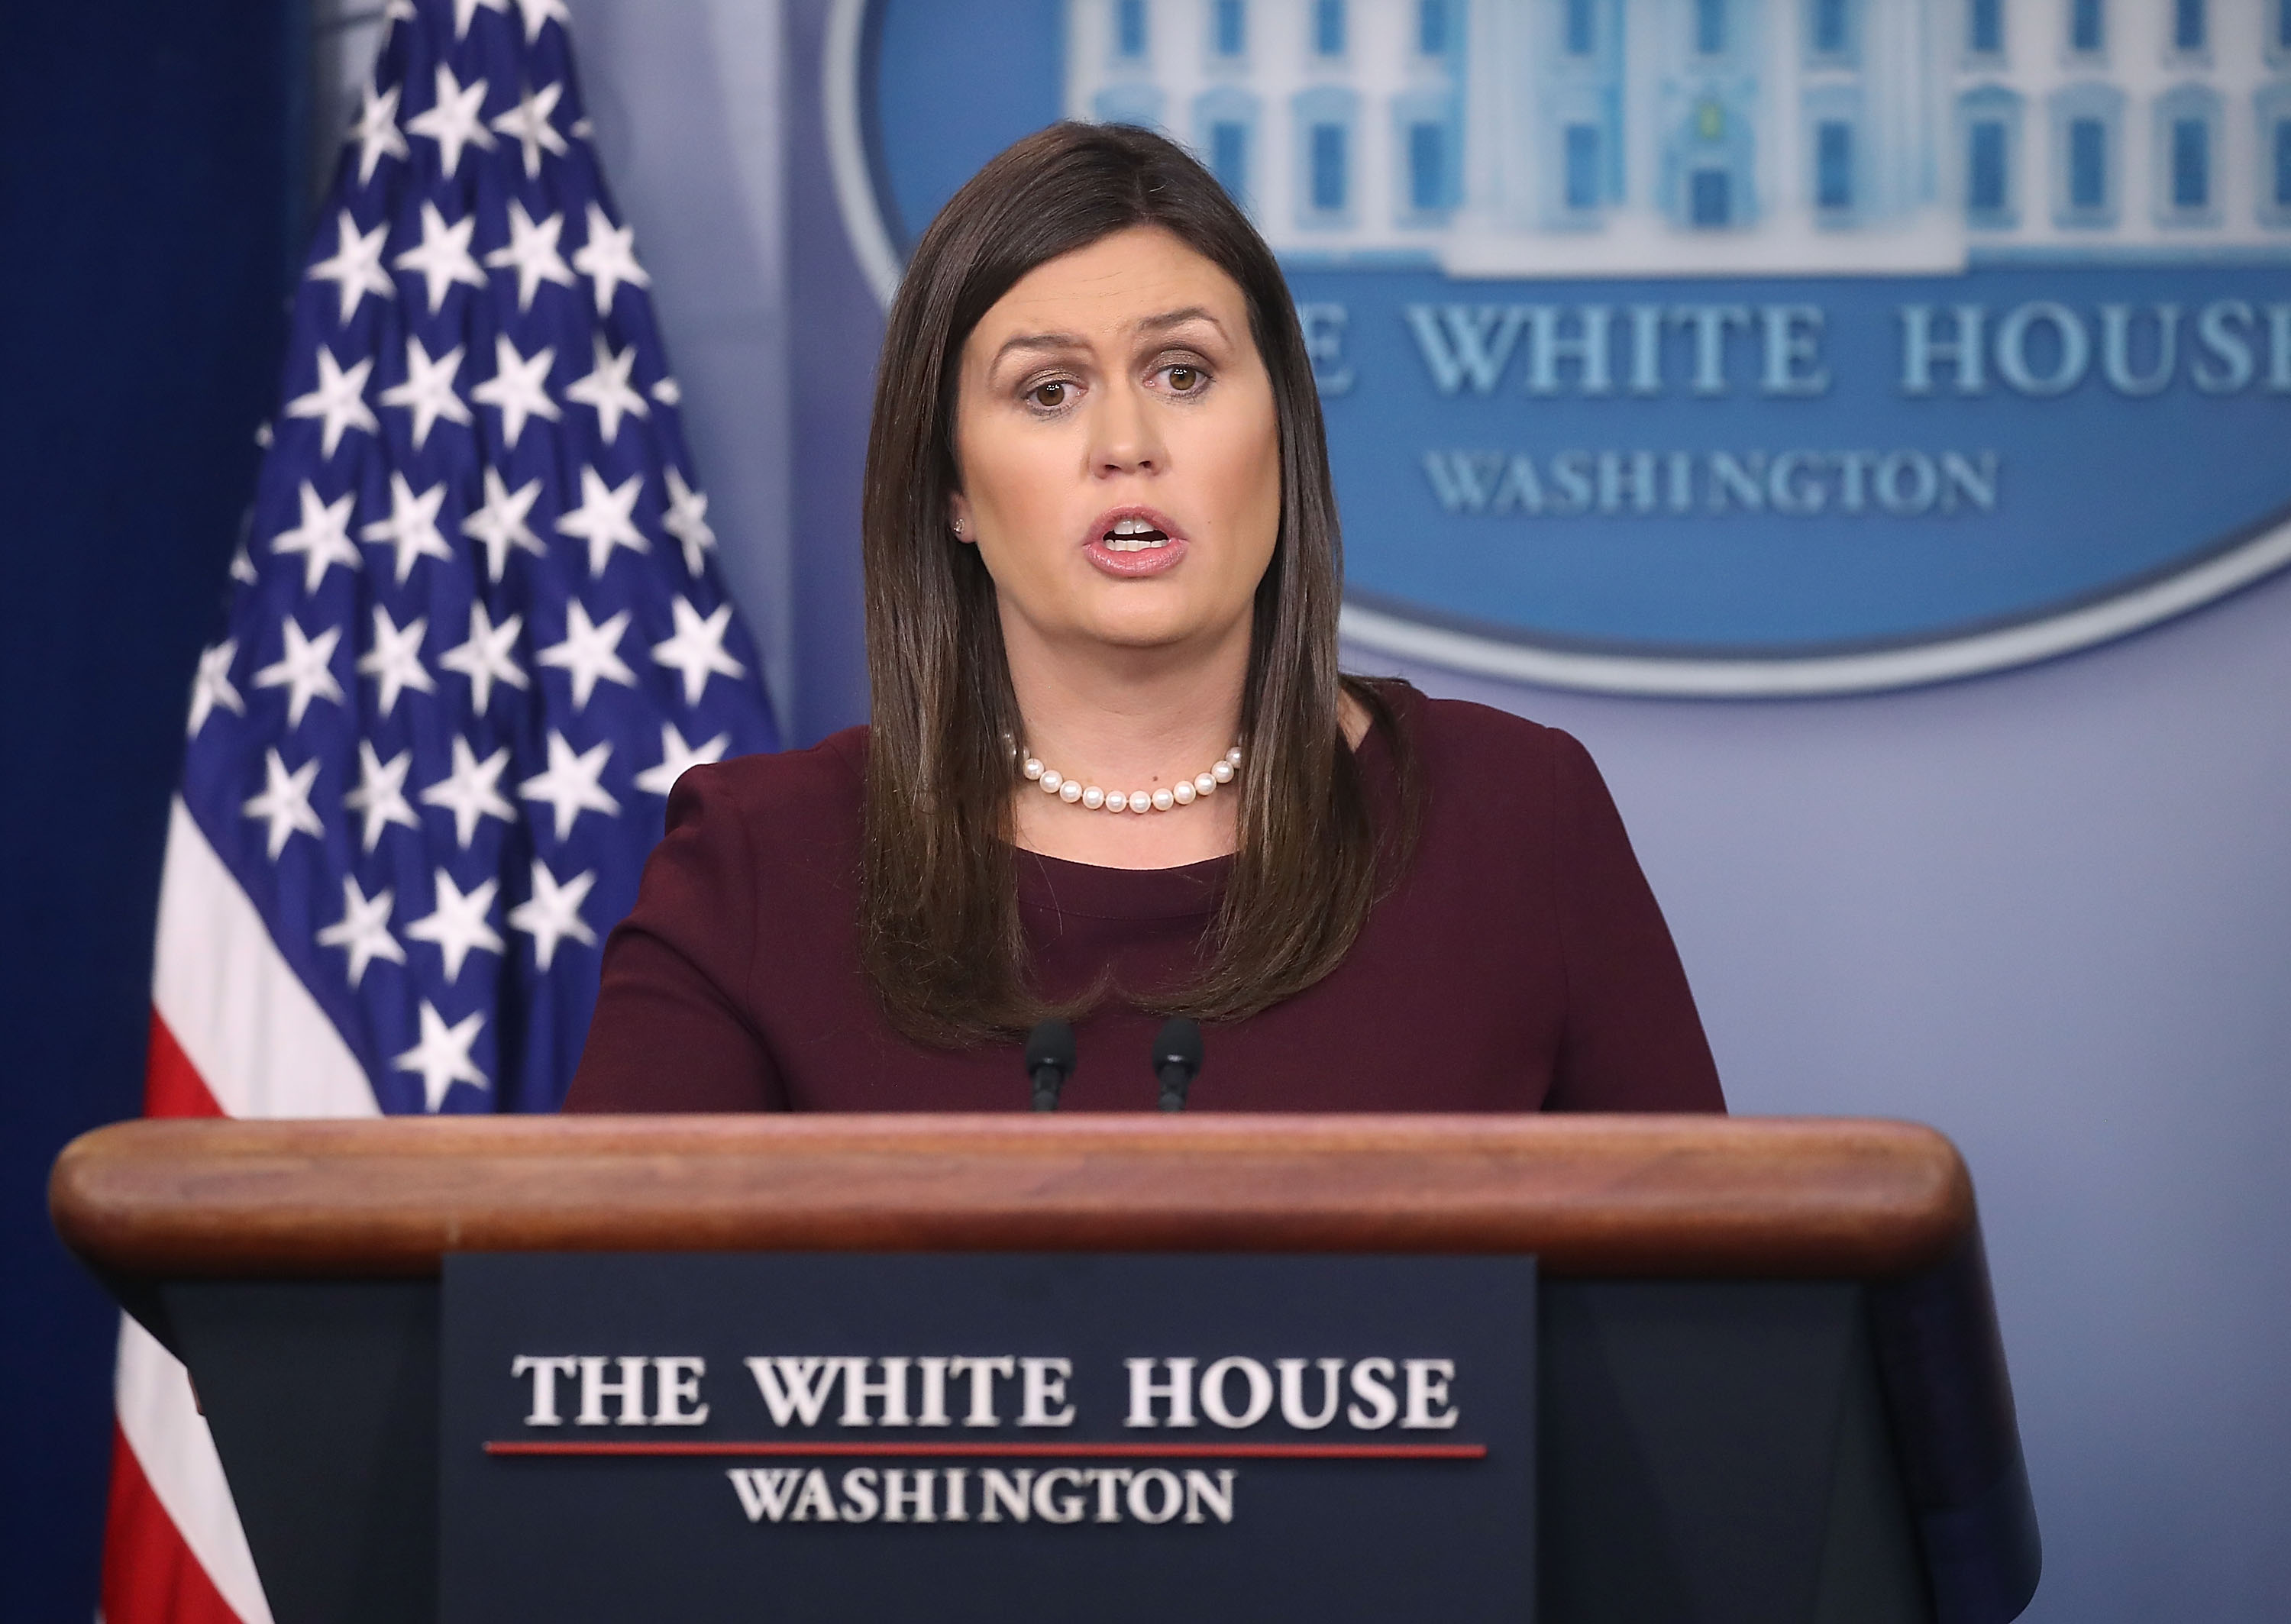 Sarah Huckabee Sanders 'Can't Guarantee' Trump 'N-Word Tape' Doesn't Exist